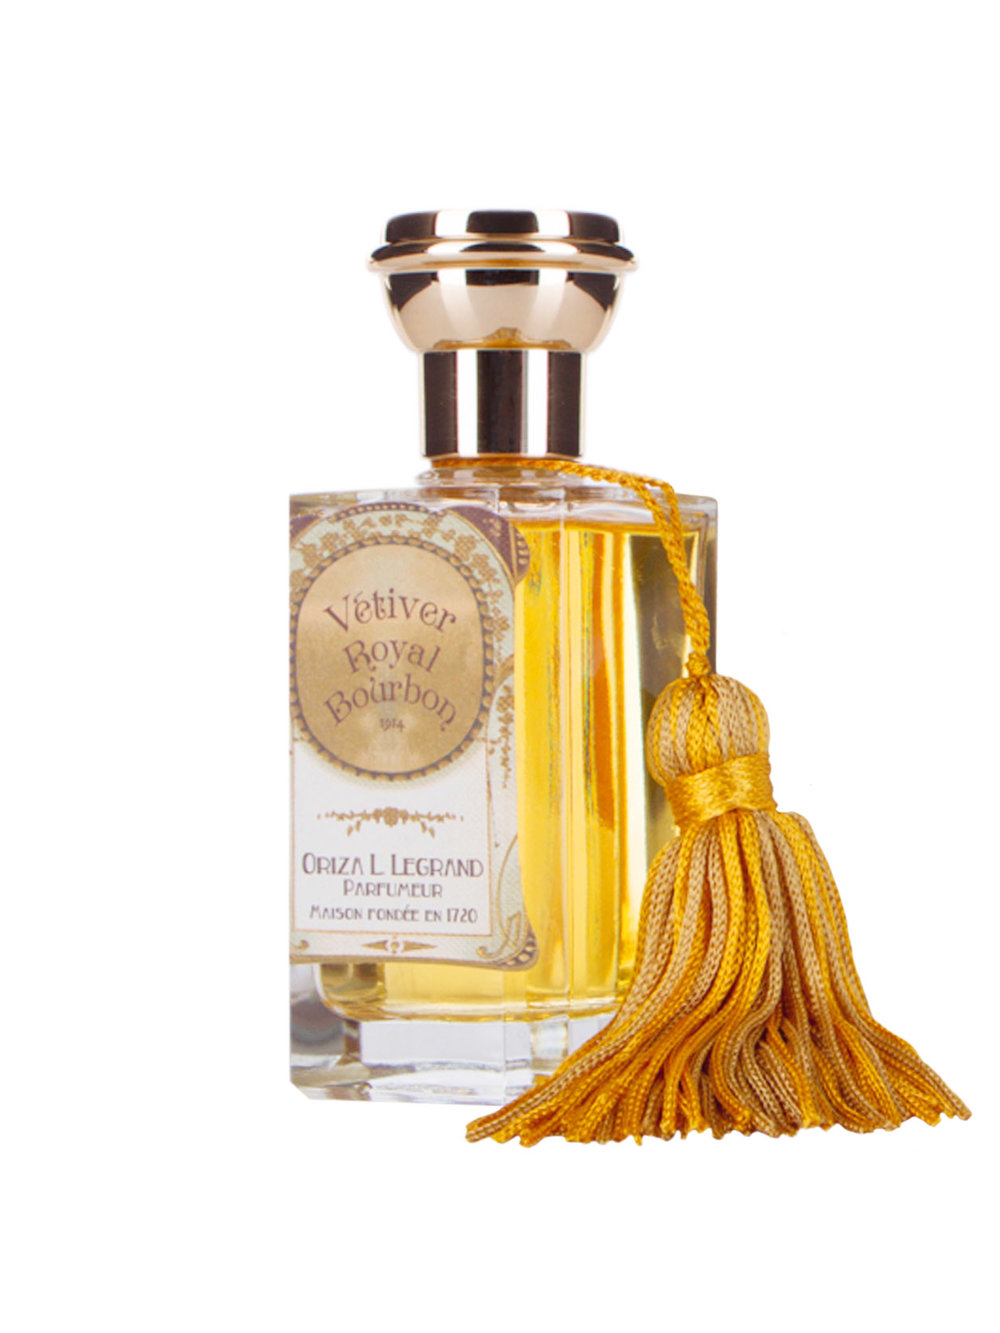 Vétiver Royal Bourbon - earthy vetiver